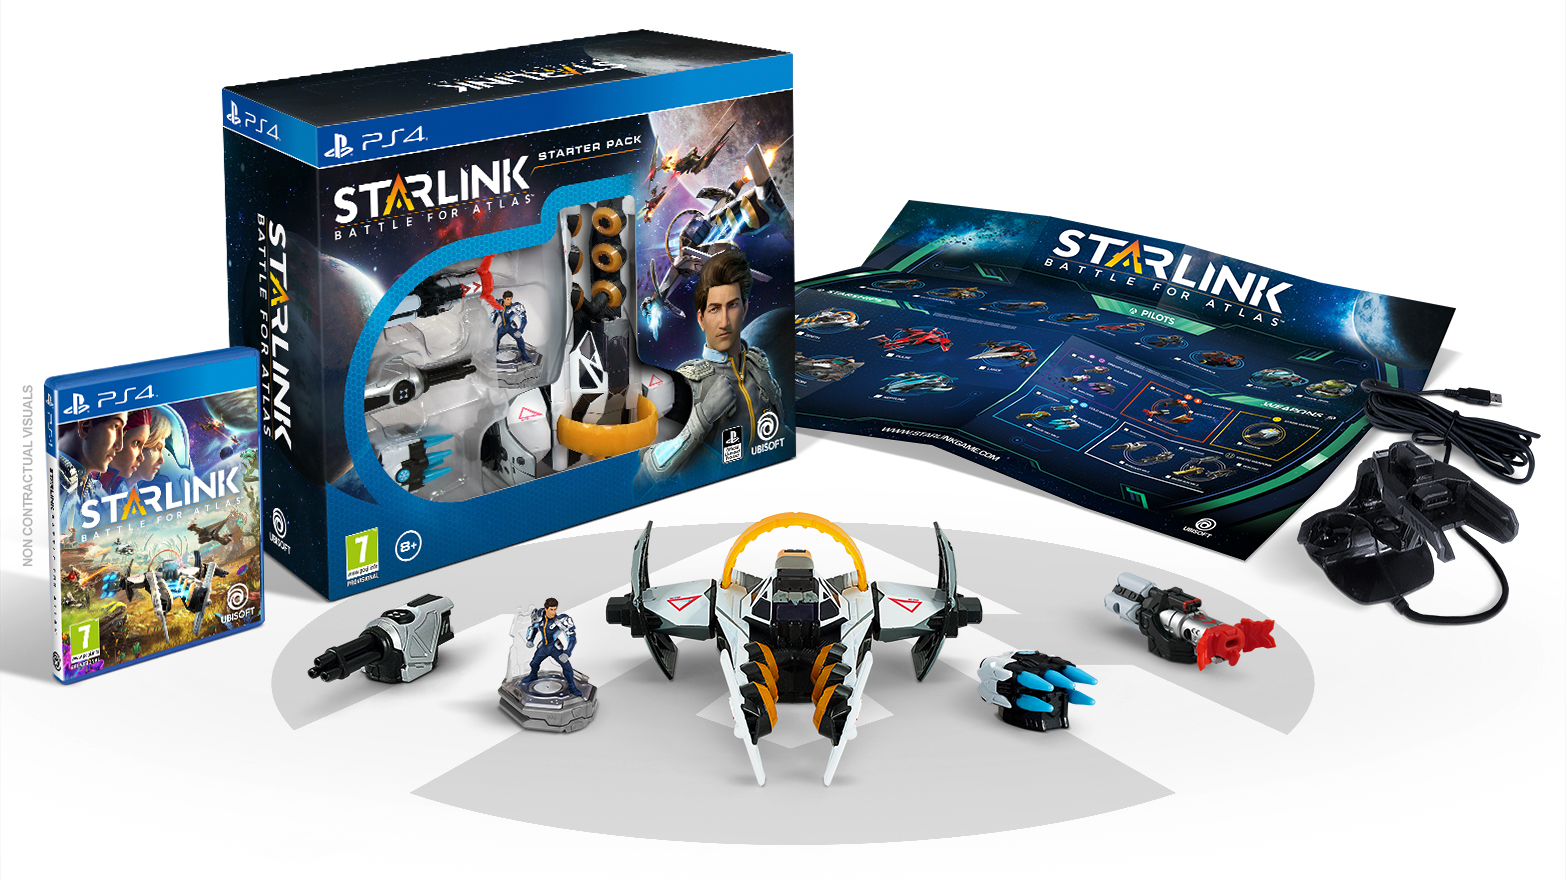 Startlink Battle for Atlas Final Product in stores